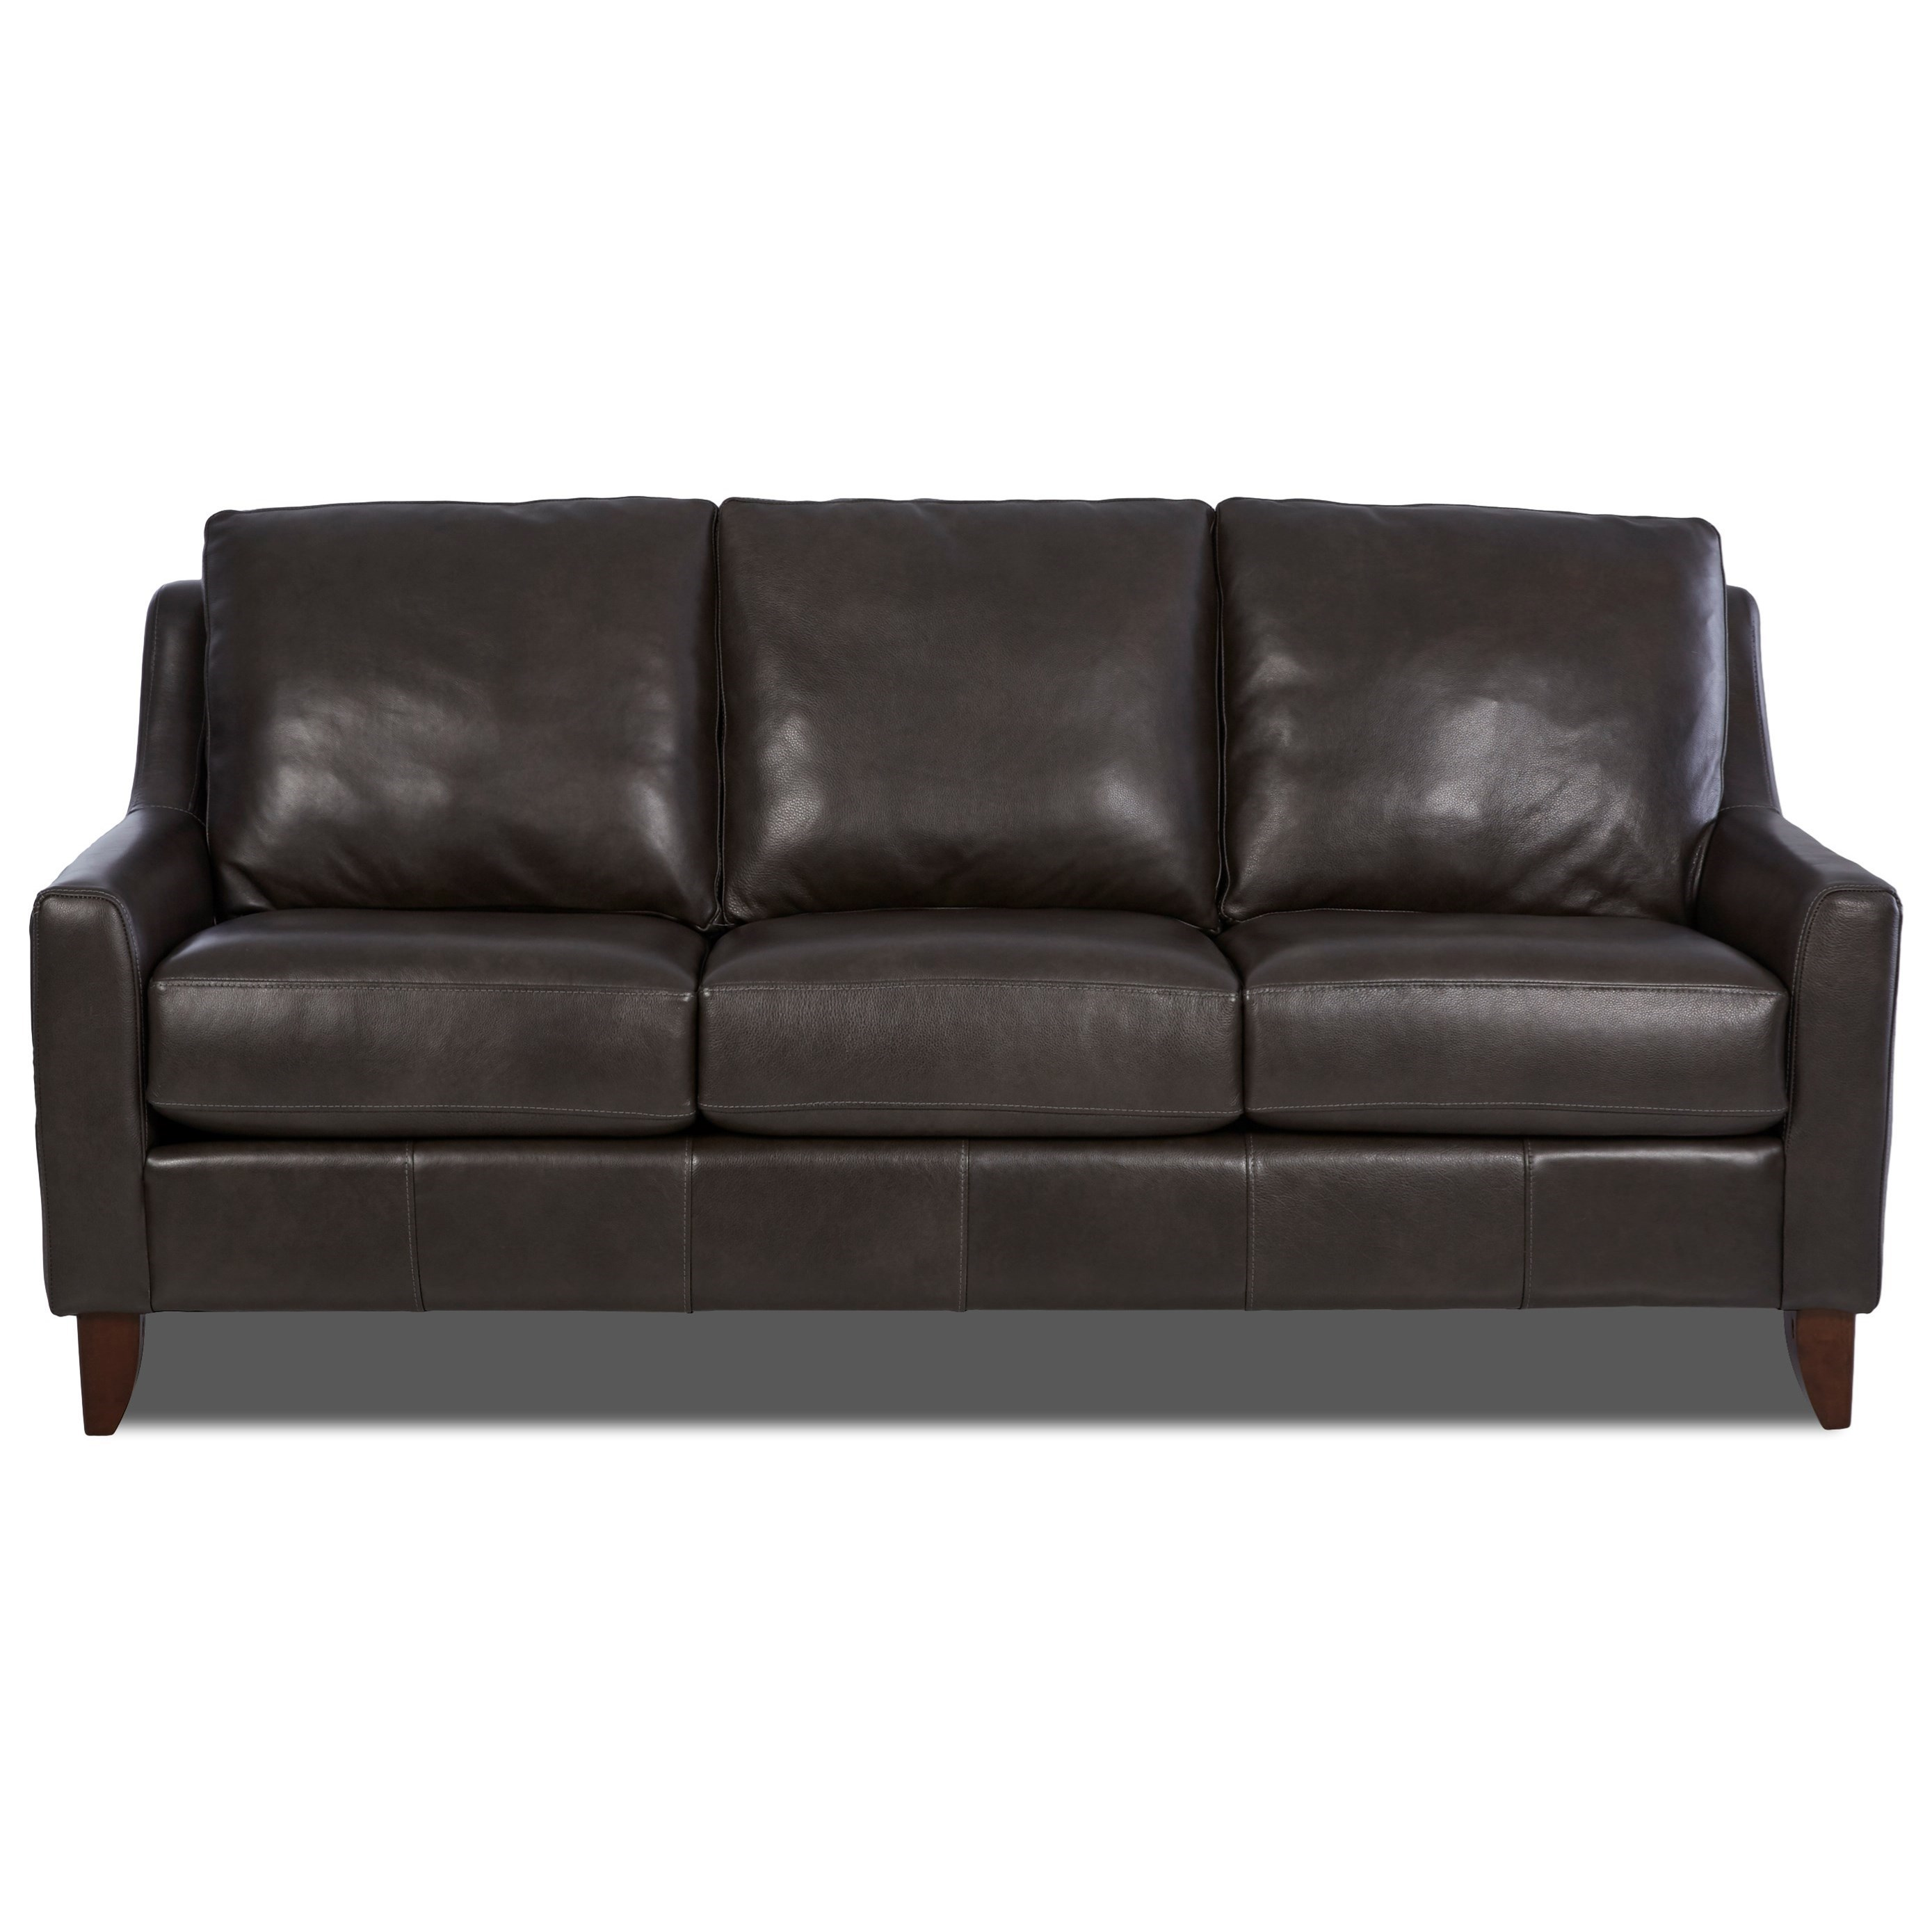 Sofa S Belton Casual Sofa With Track Arms By Klaussner At Wayside Furniture